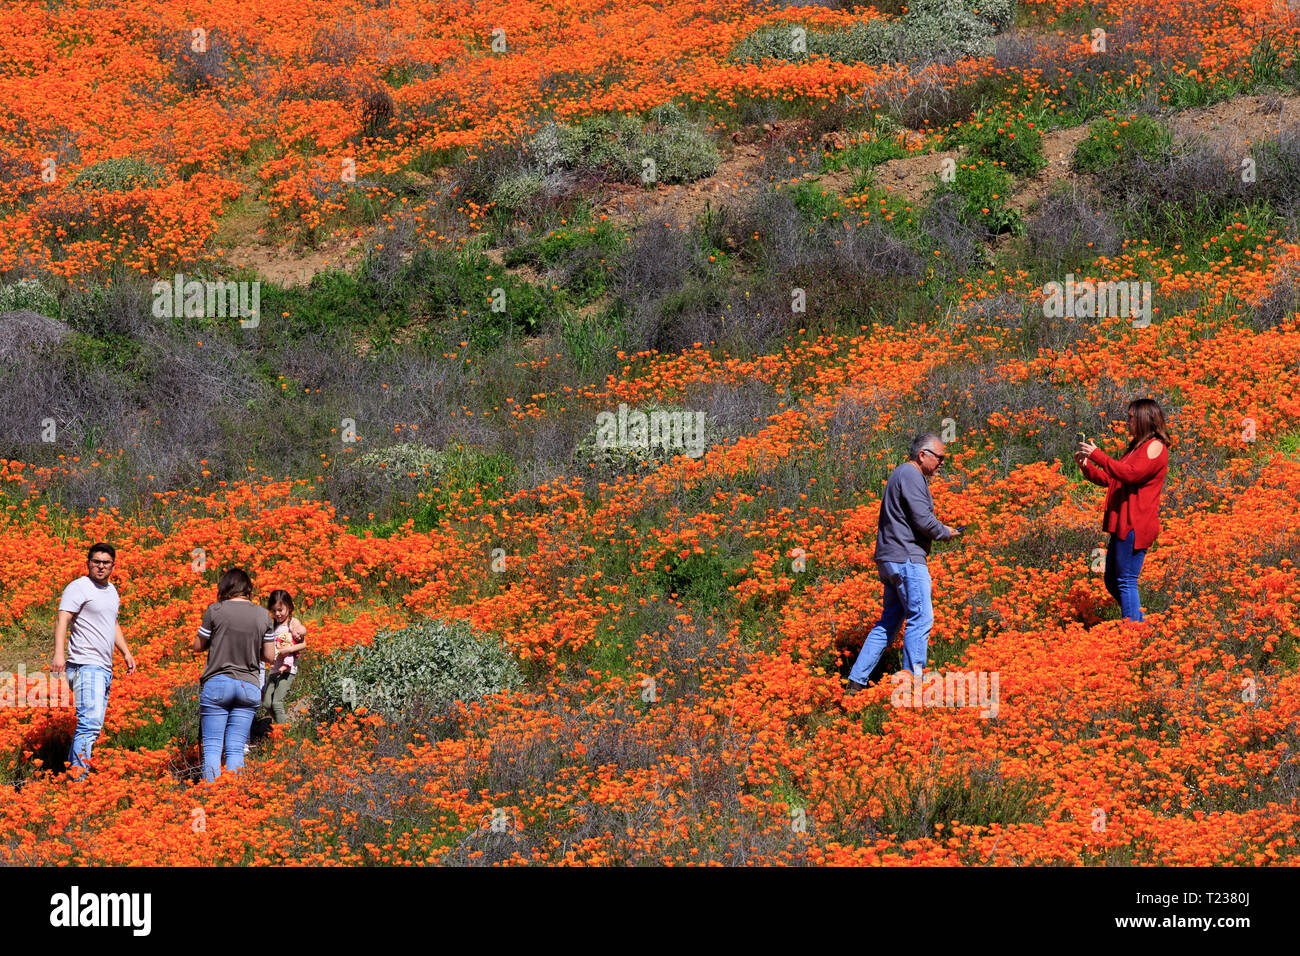 Poppy flowers, Walker Canyon Conservation Area, Lake Elsinore, Riverside County, California,USA - Stock Image